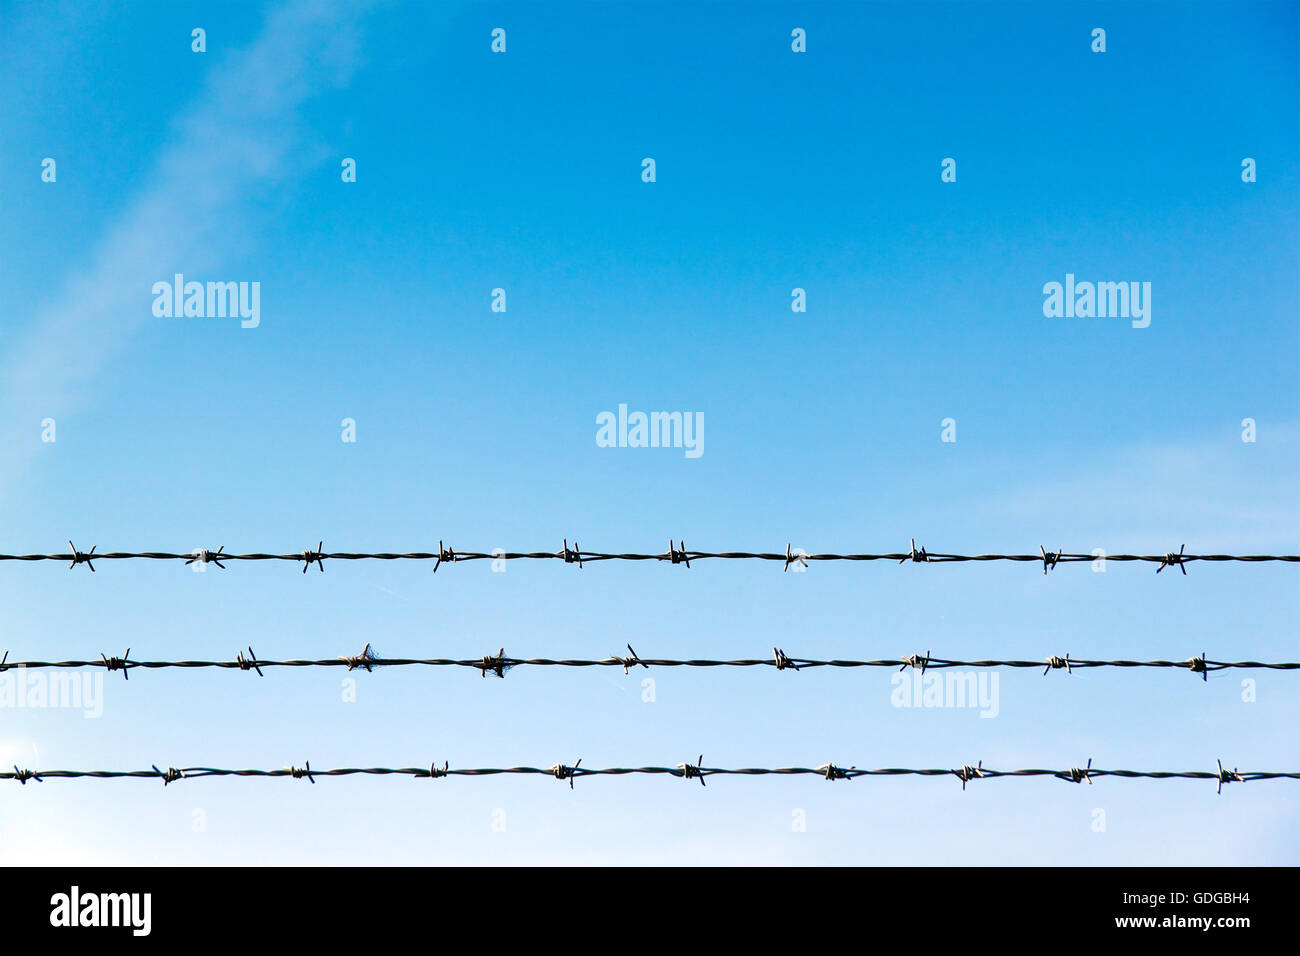 Barbwire danger zone - Stock Image